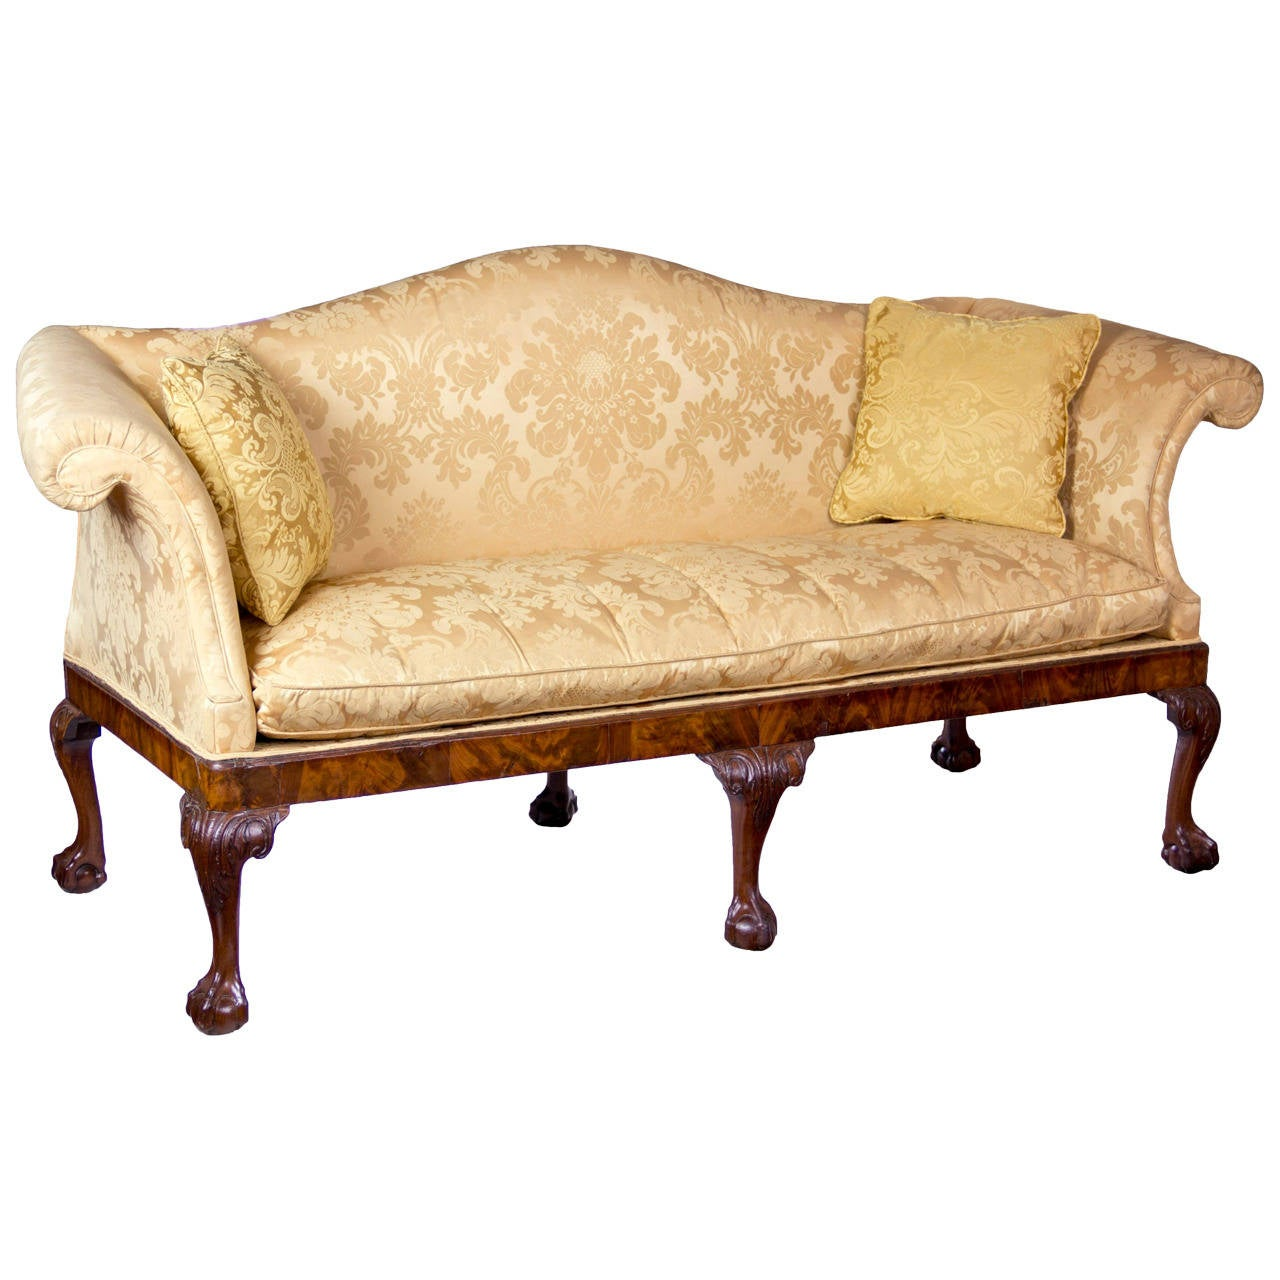 Chippendale Camelback Sofa With Claw And Ball Feet English Or Irish Circa 1770 For